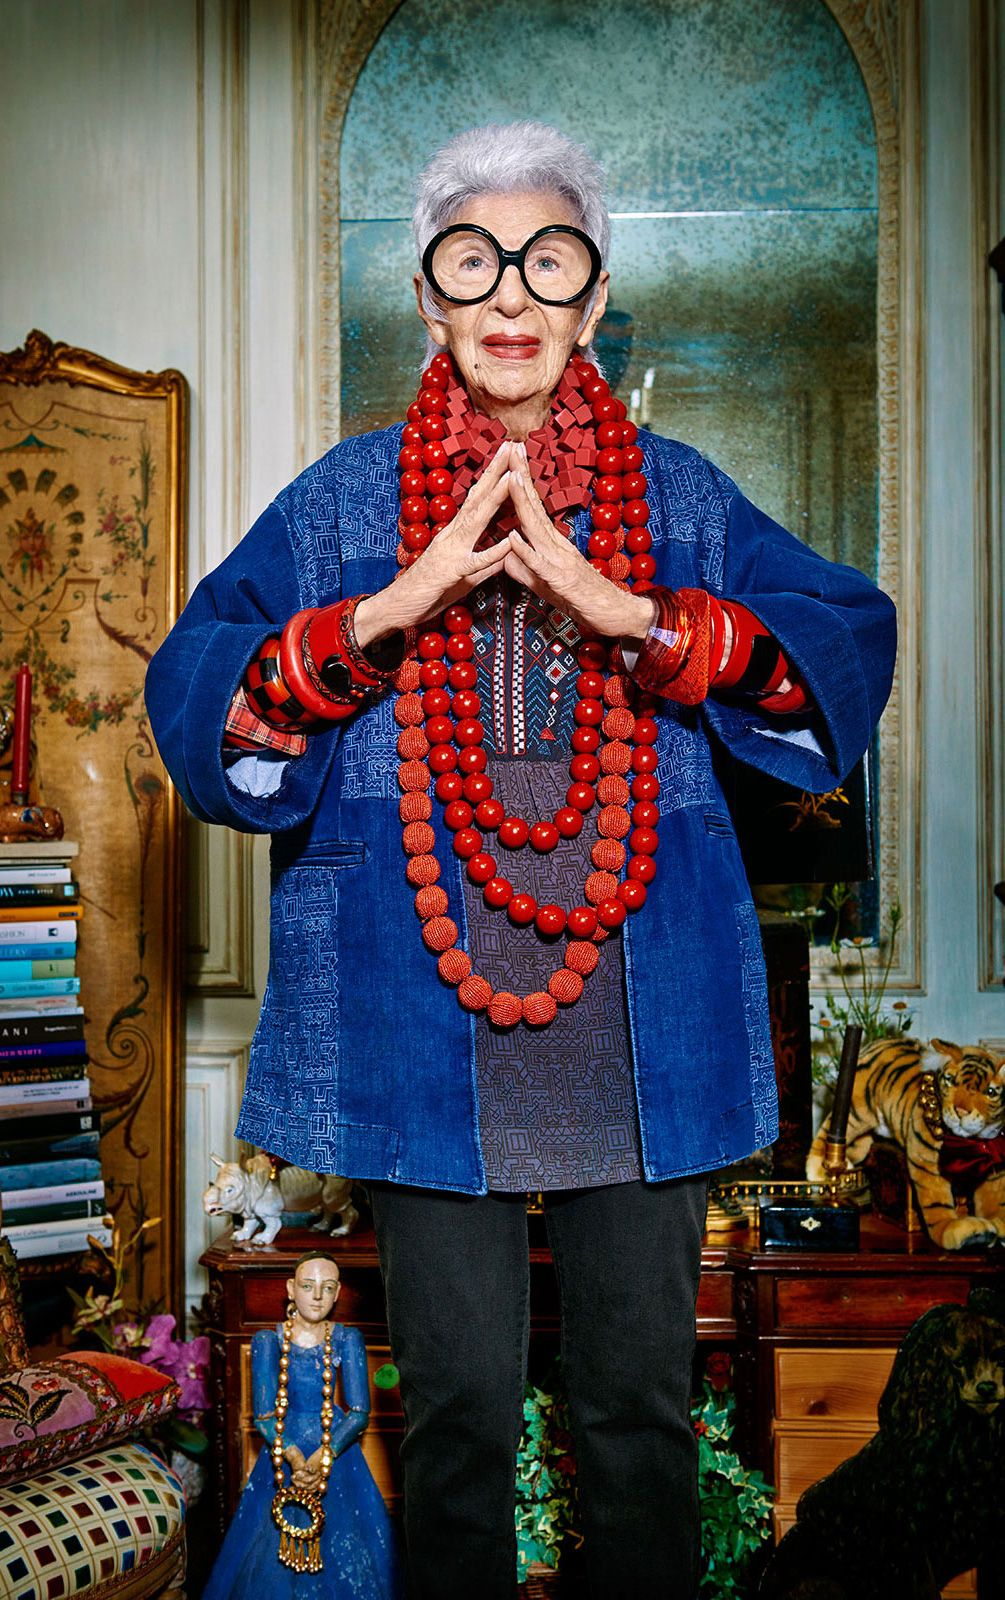 94-Year-Old Iris Apfel Is Cooler Than You'll Ever Be, as the